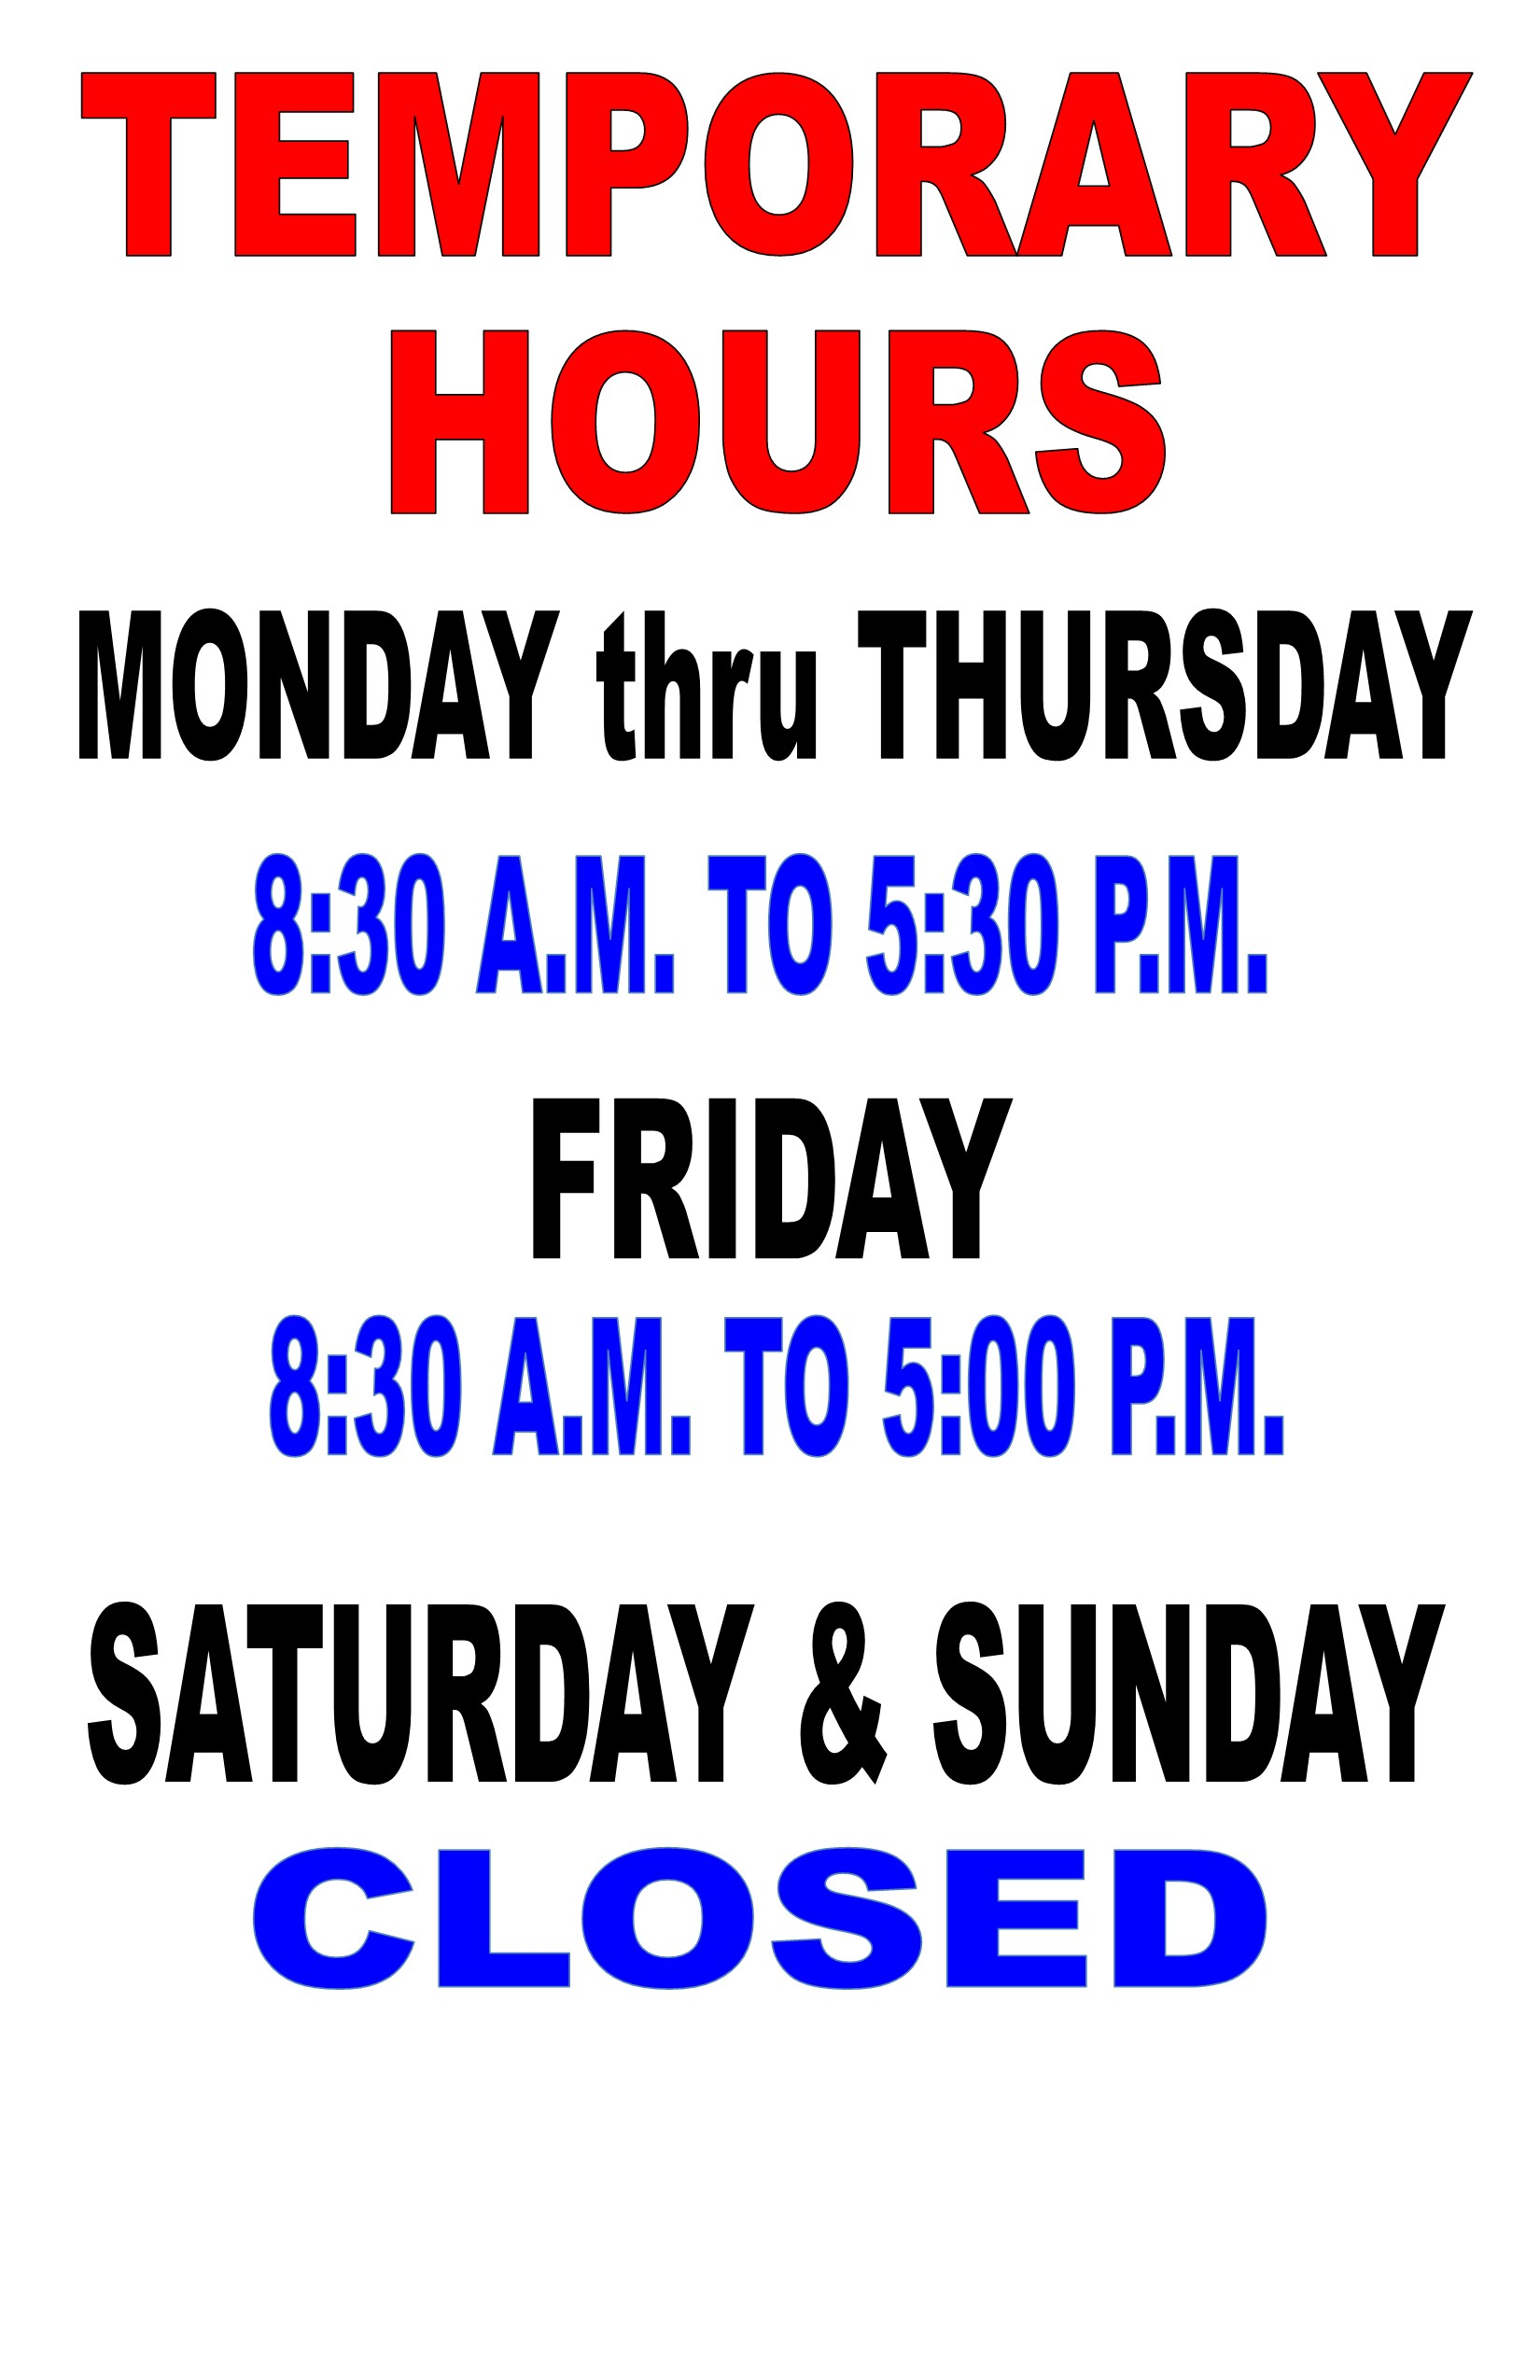 Temporary Library Hours: Monday through Thursday 8:30 a.m. to 5:30 p.m. Friday 8:30 a.m. to 5:00 p.m. Closed on Saturday and Sunday.